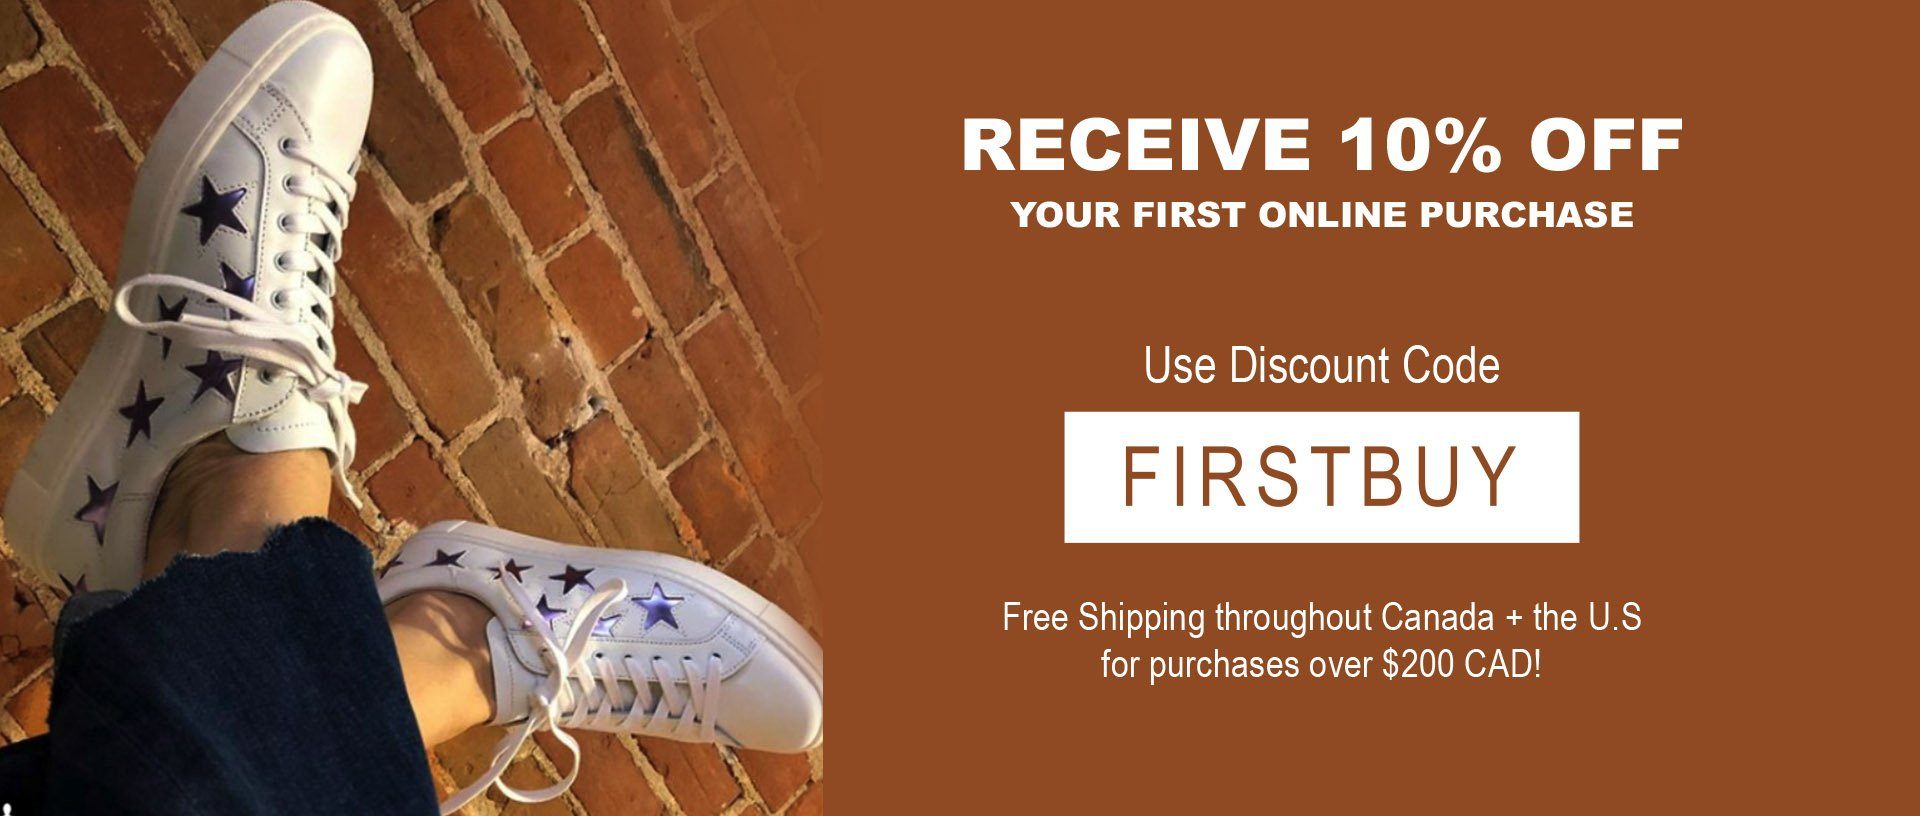 men's shoes promotion